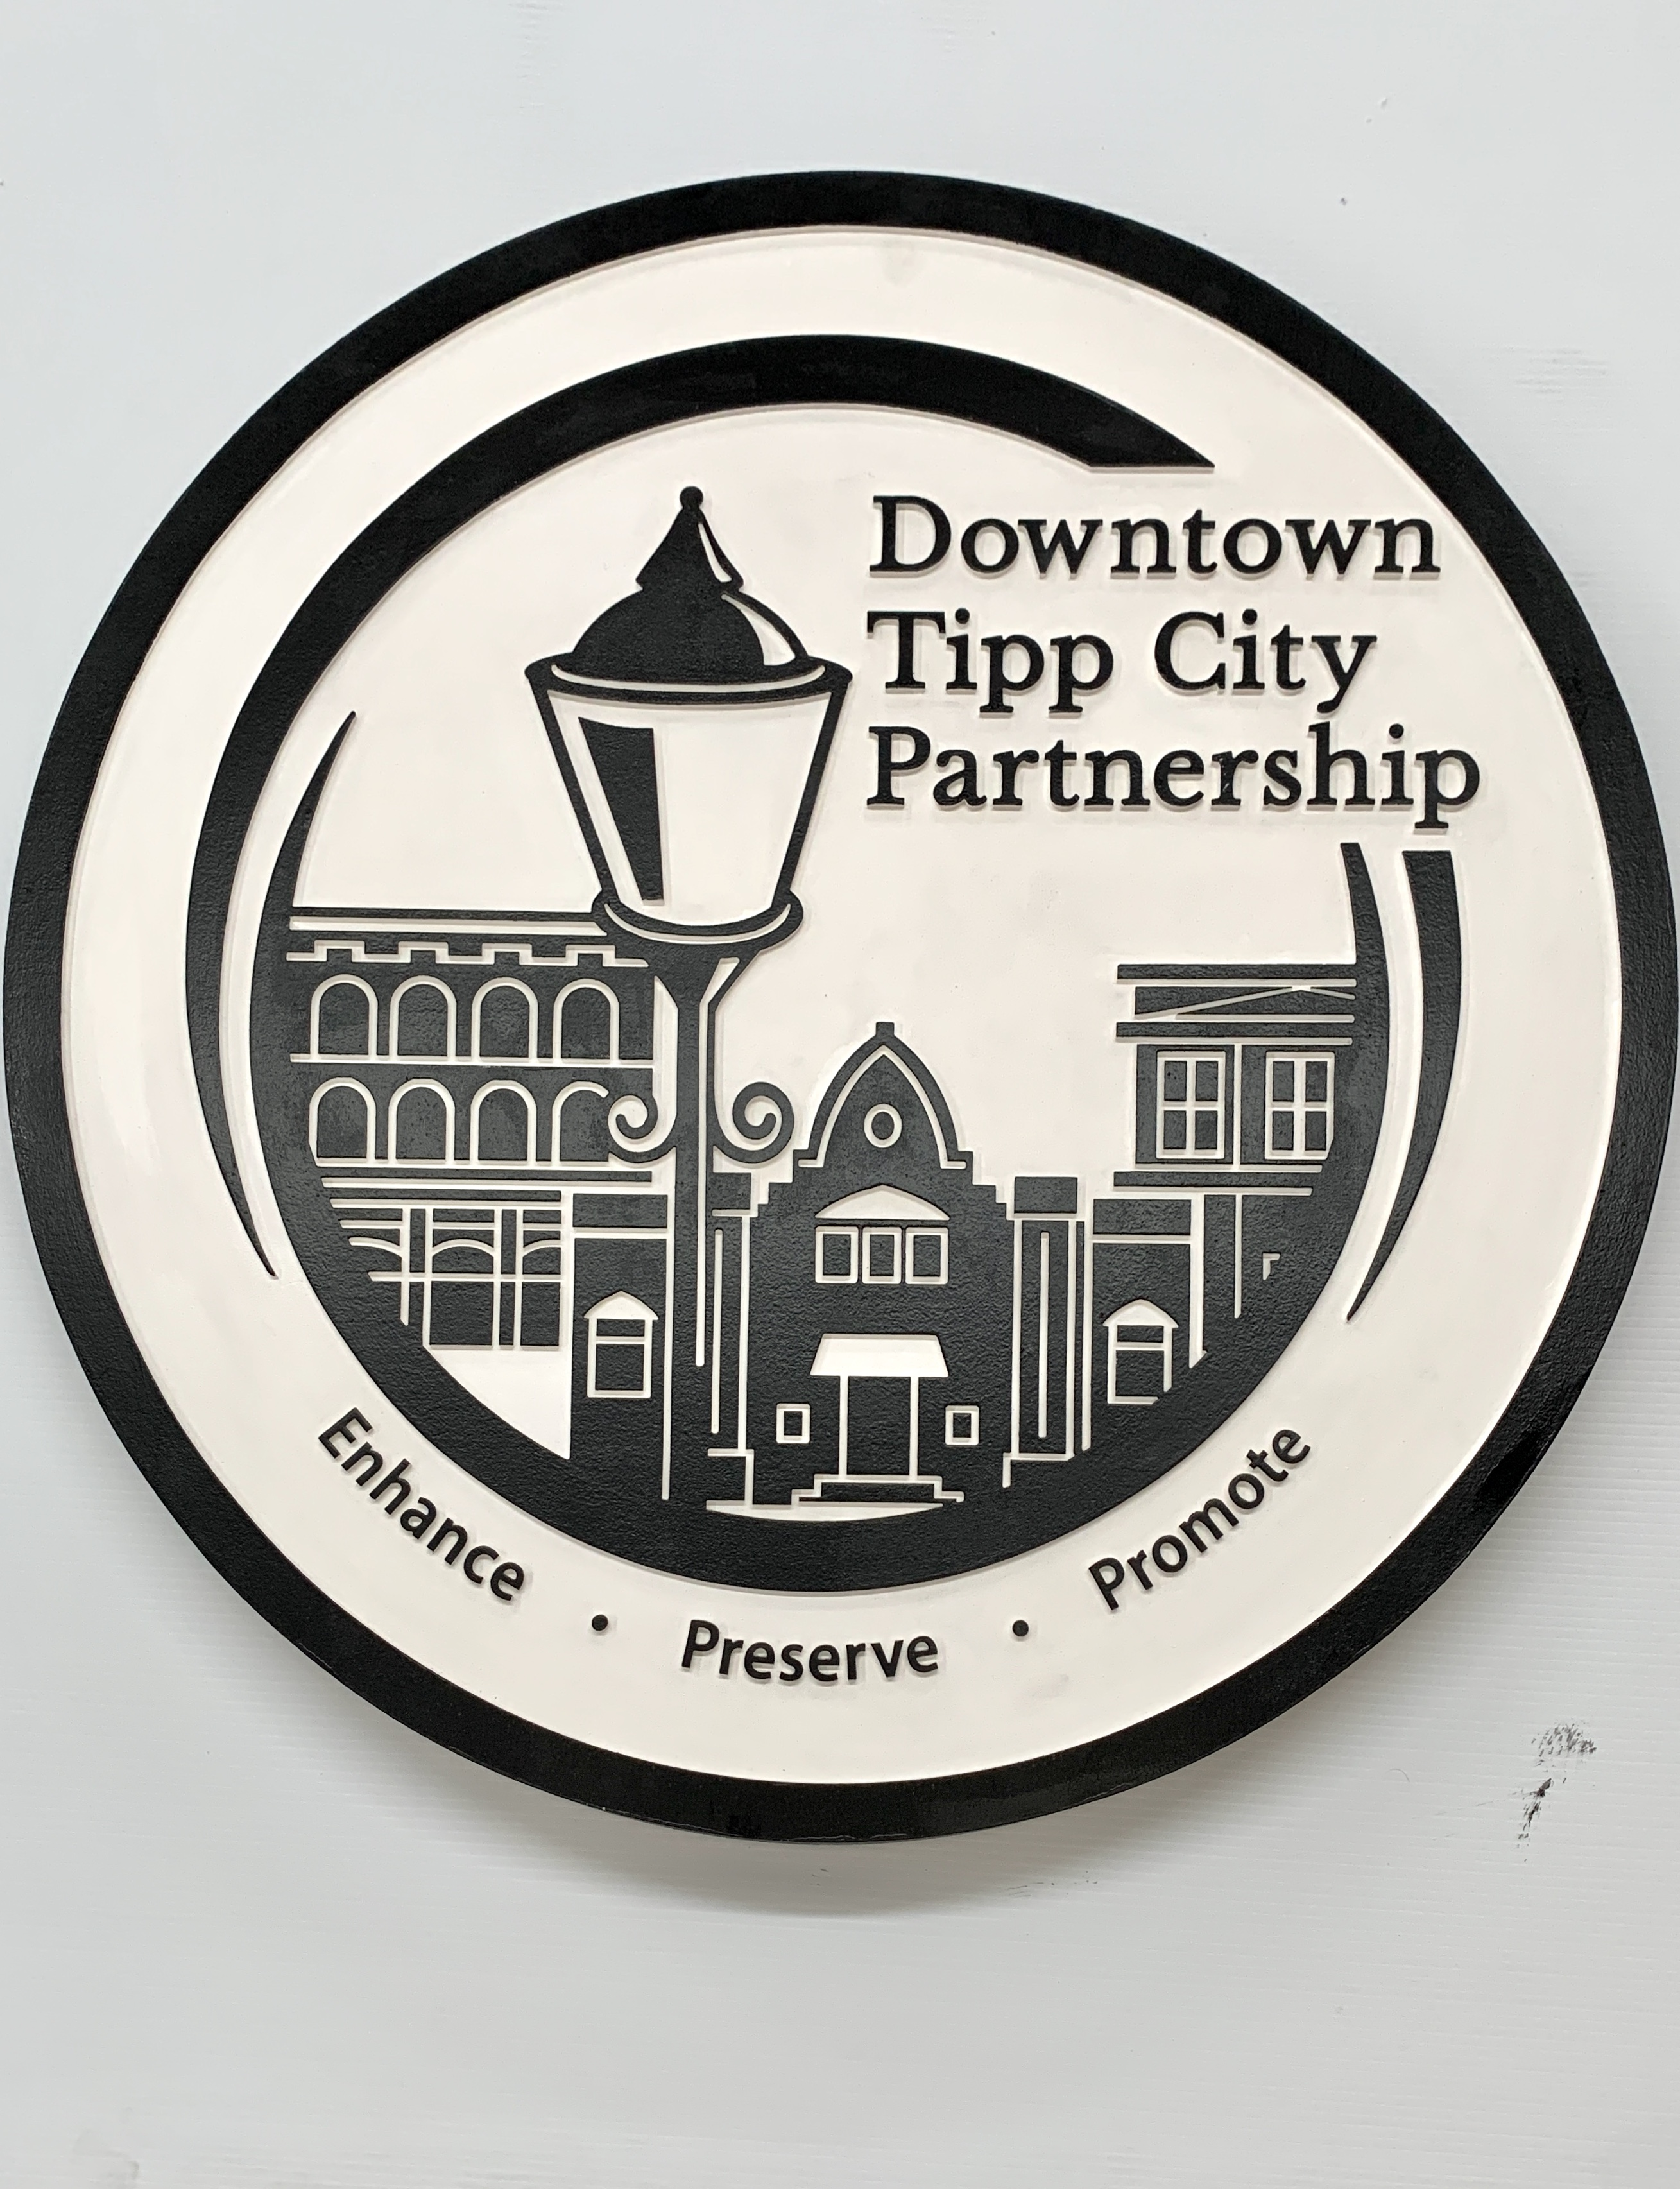 Downtown Tipp City Partnership